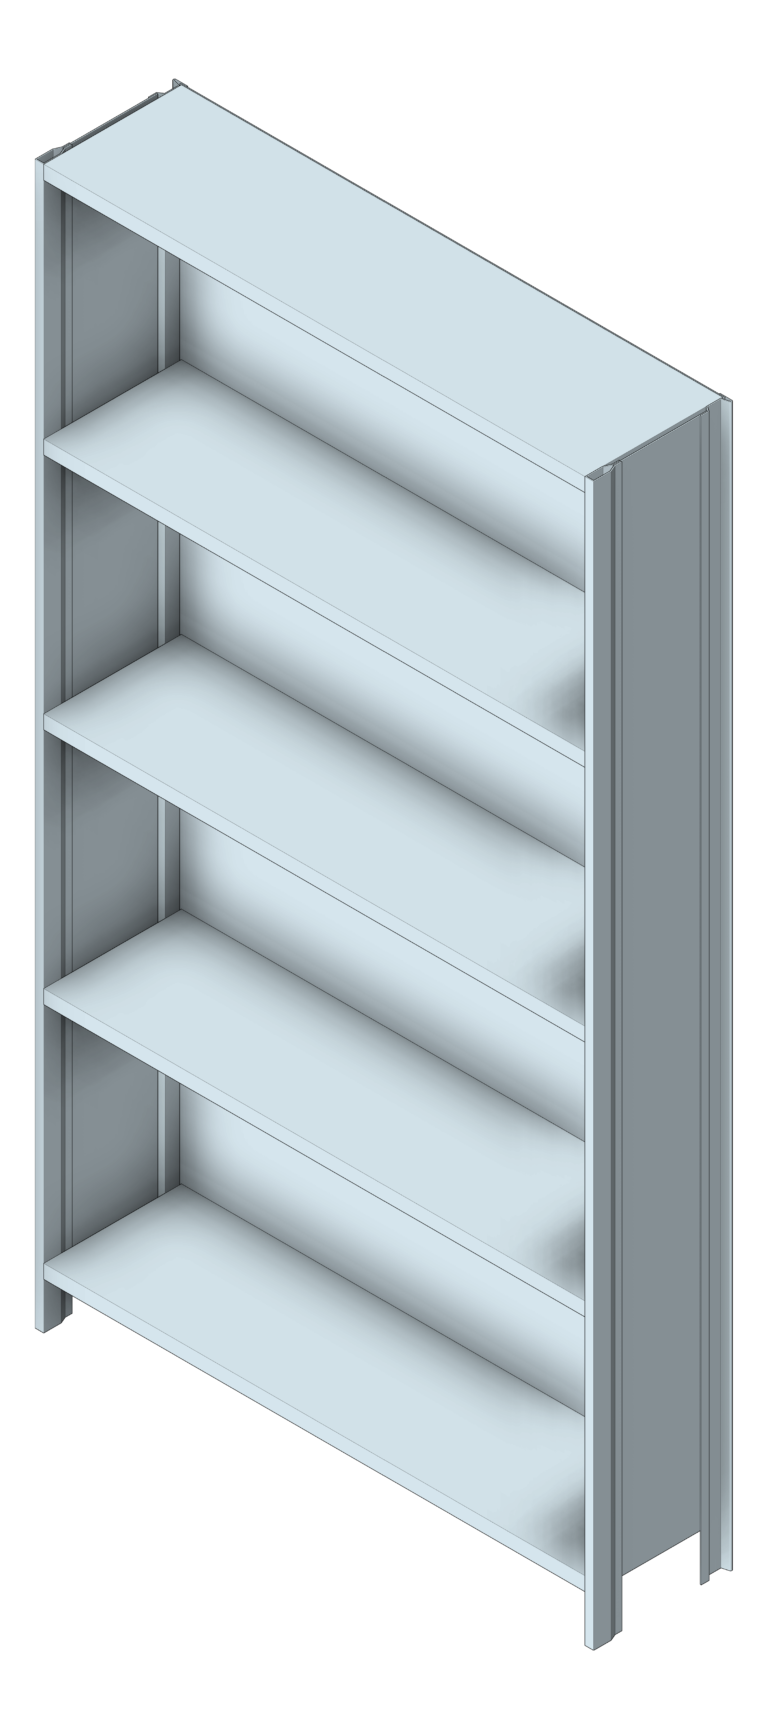 Shelving_Closed_ASI_PerformancePlus_3D Shaded